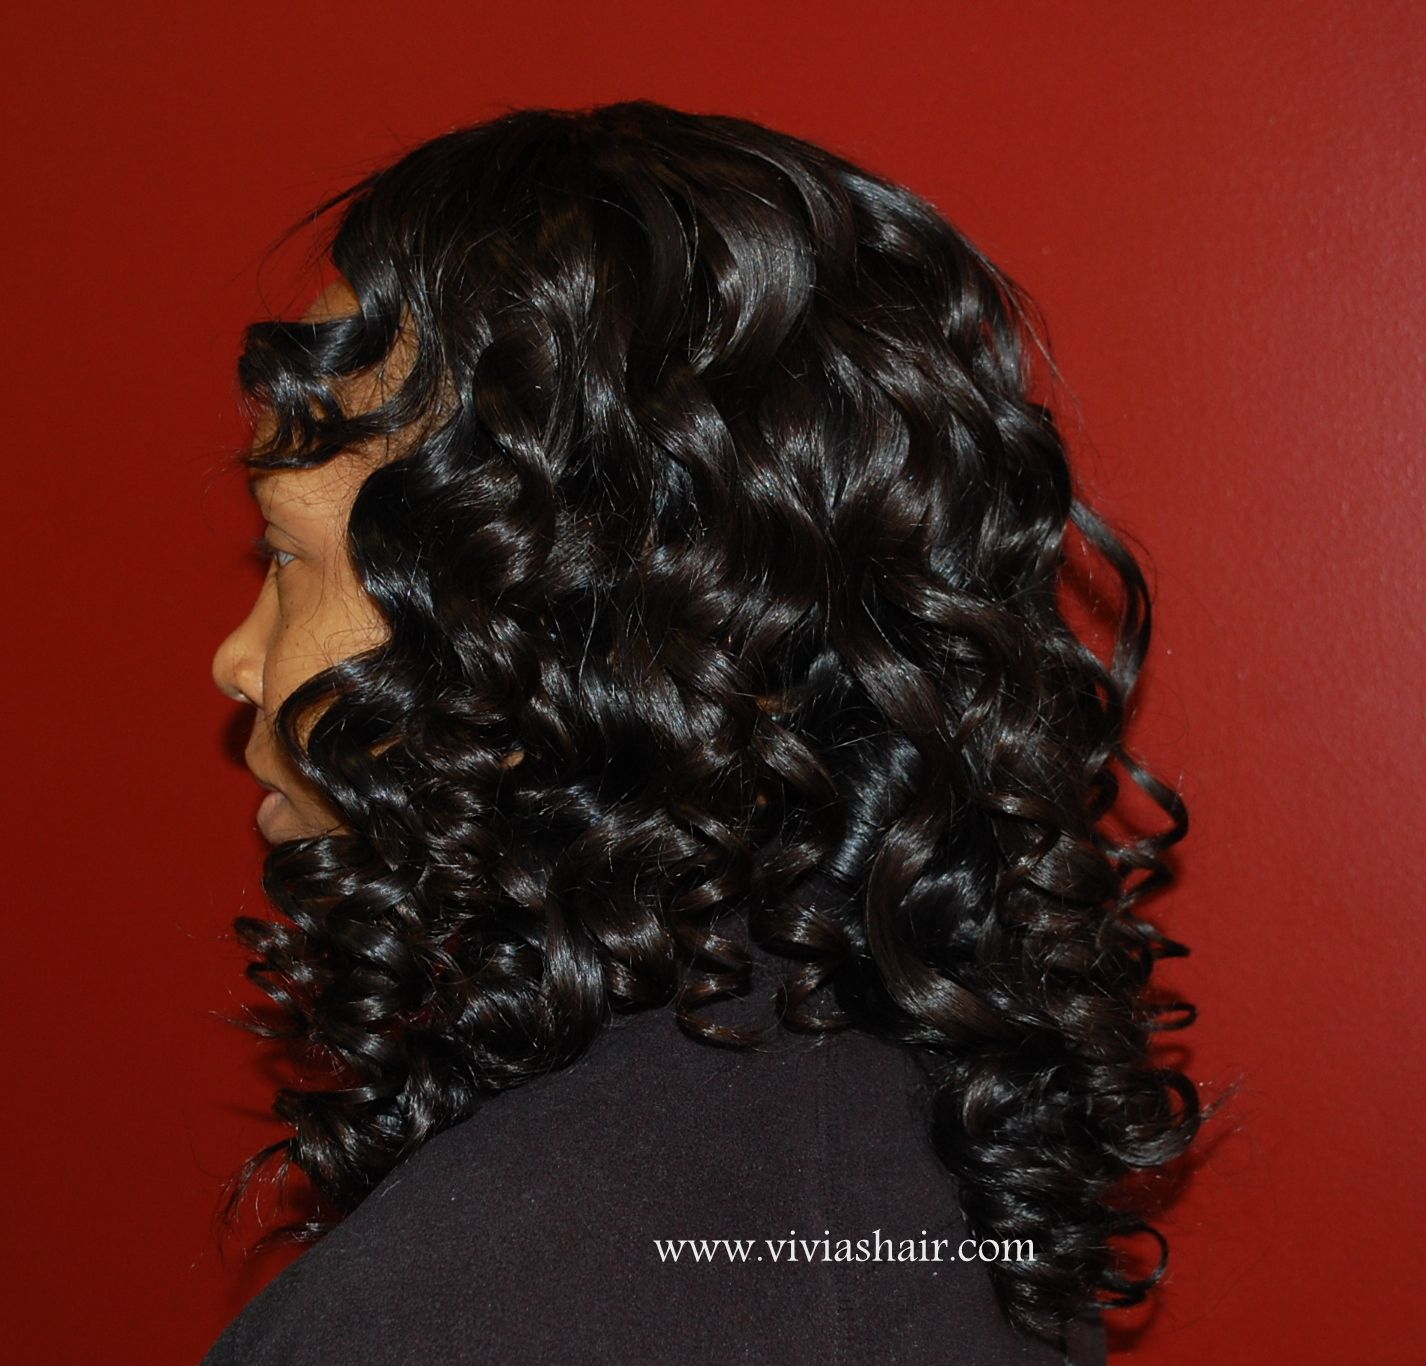 Black Hair Styles, Hair Extensions, Hair Salon, Hair Salon